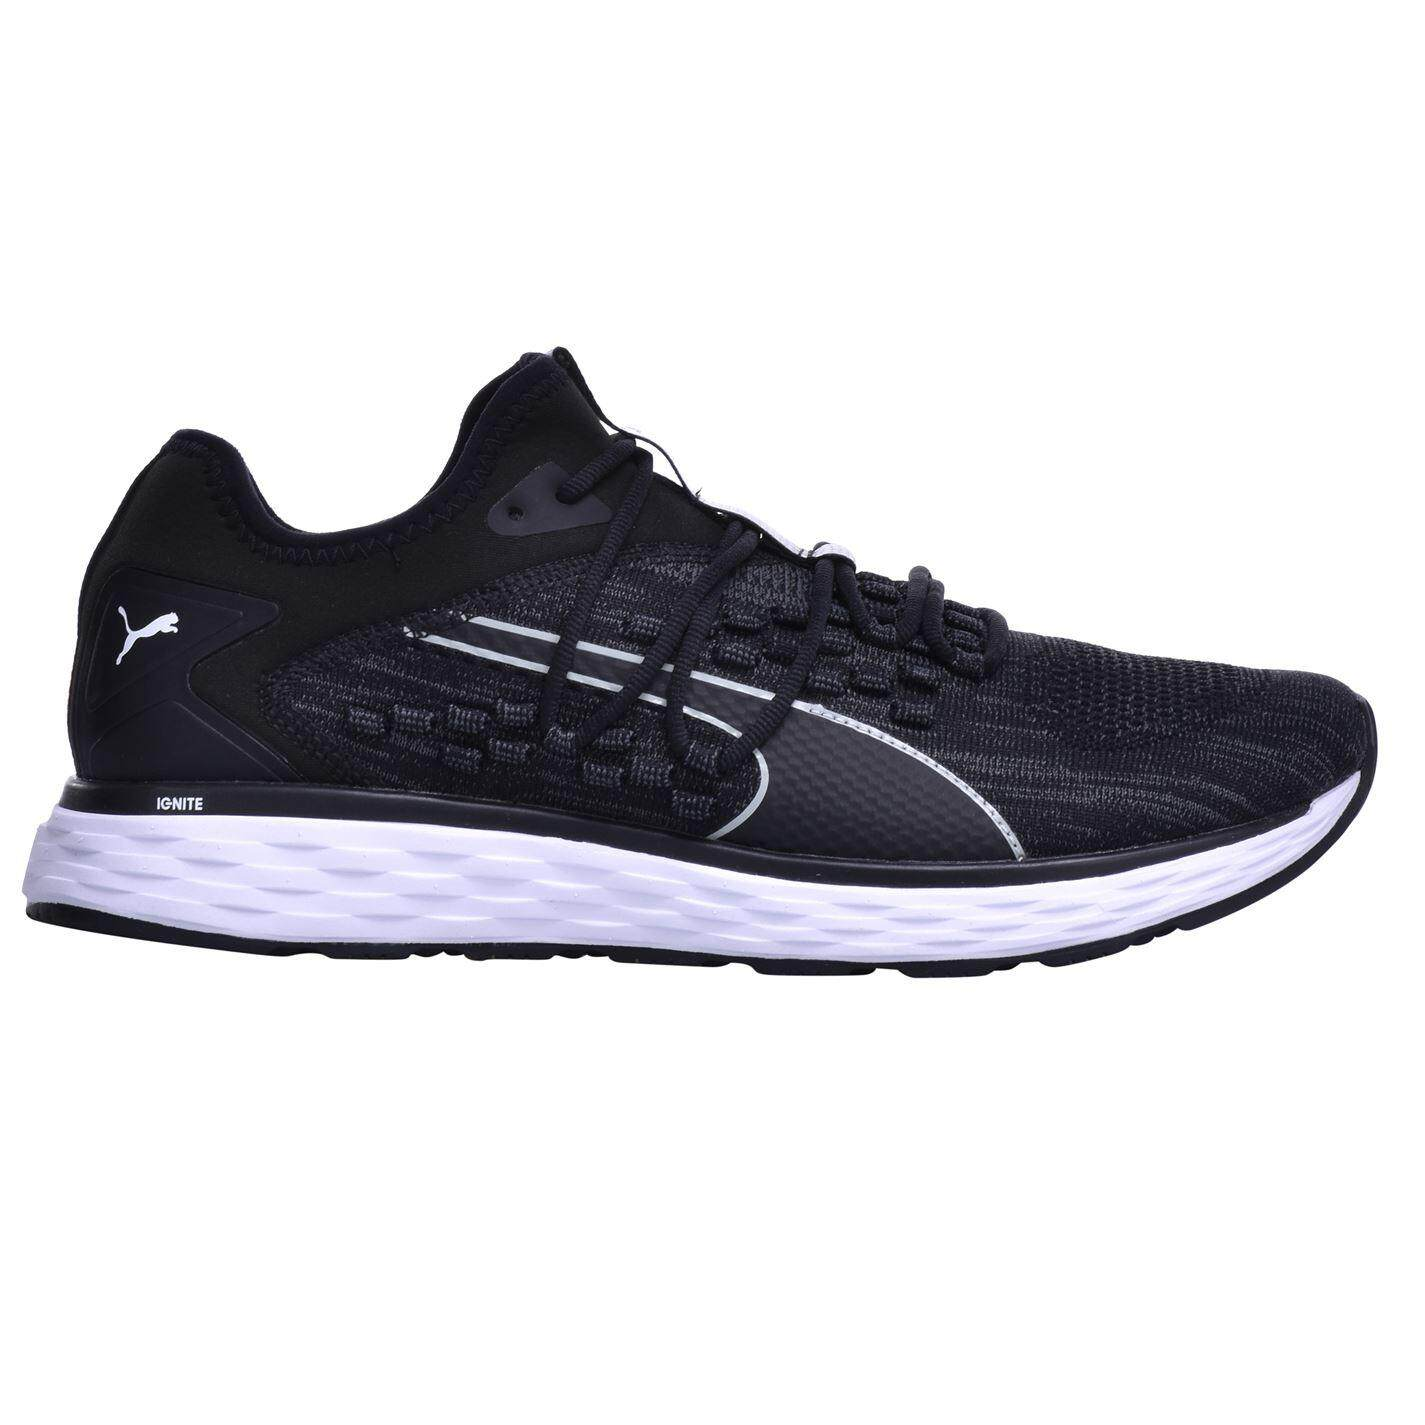 07c033bbb94b Puma Men s Sports Shoes - Running Shoes price in Malaysia - Best ...